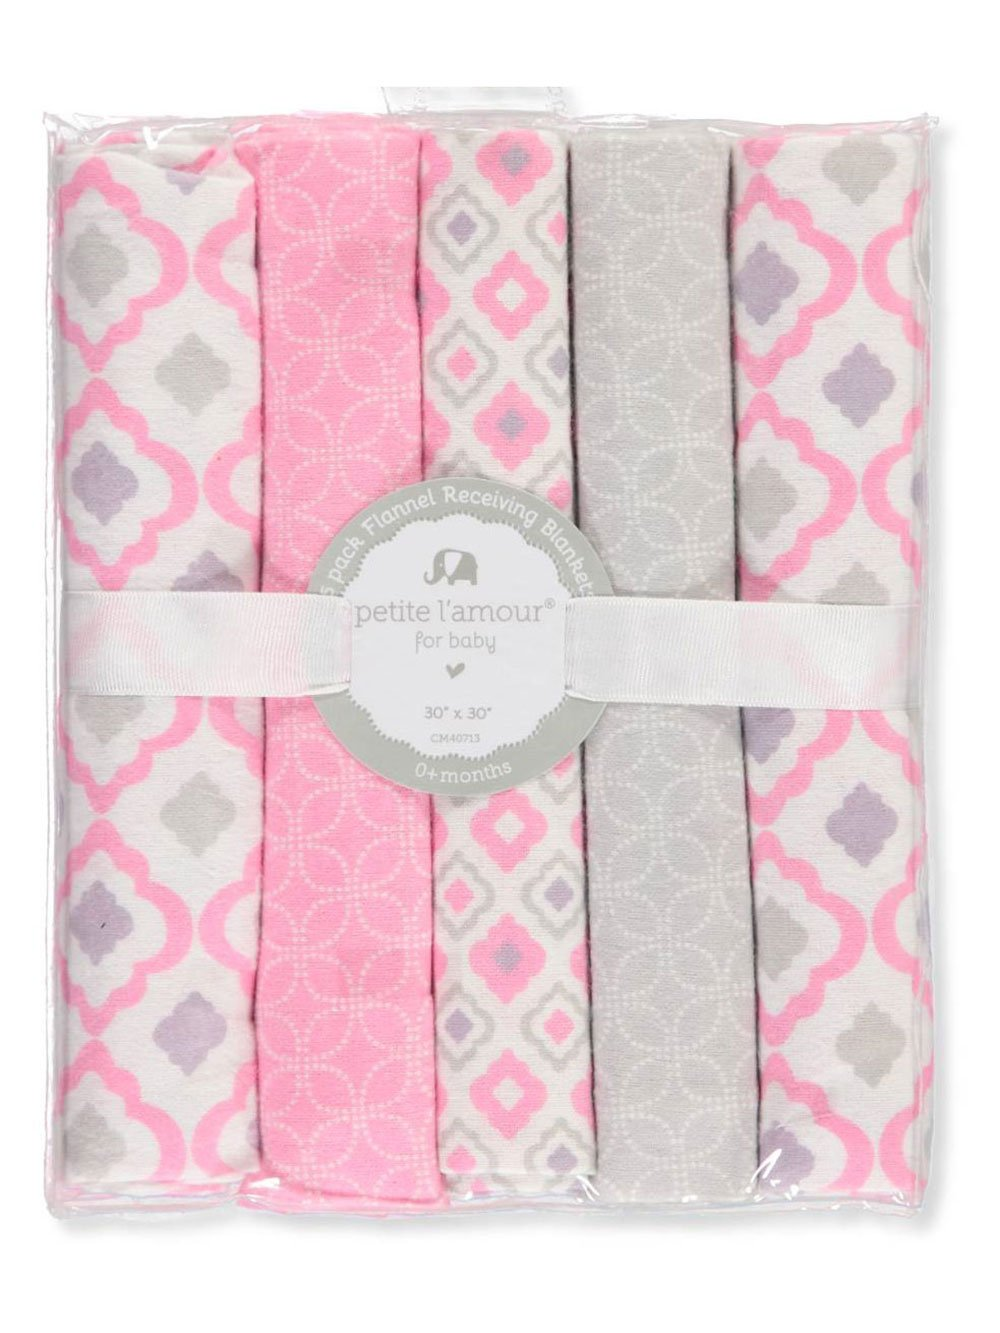 Petite L'amour 5-Pack Flannel Receiving Blankets - Pink, one Size by Petite L'amour